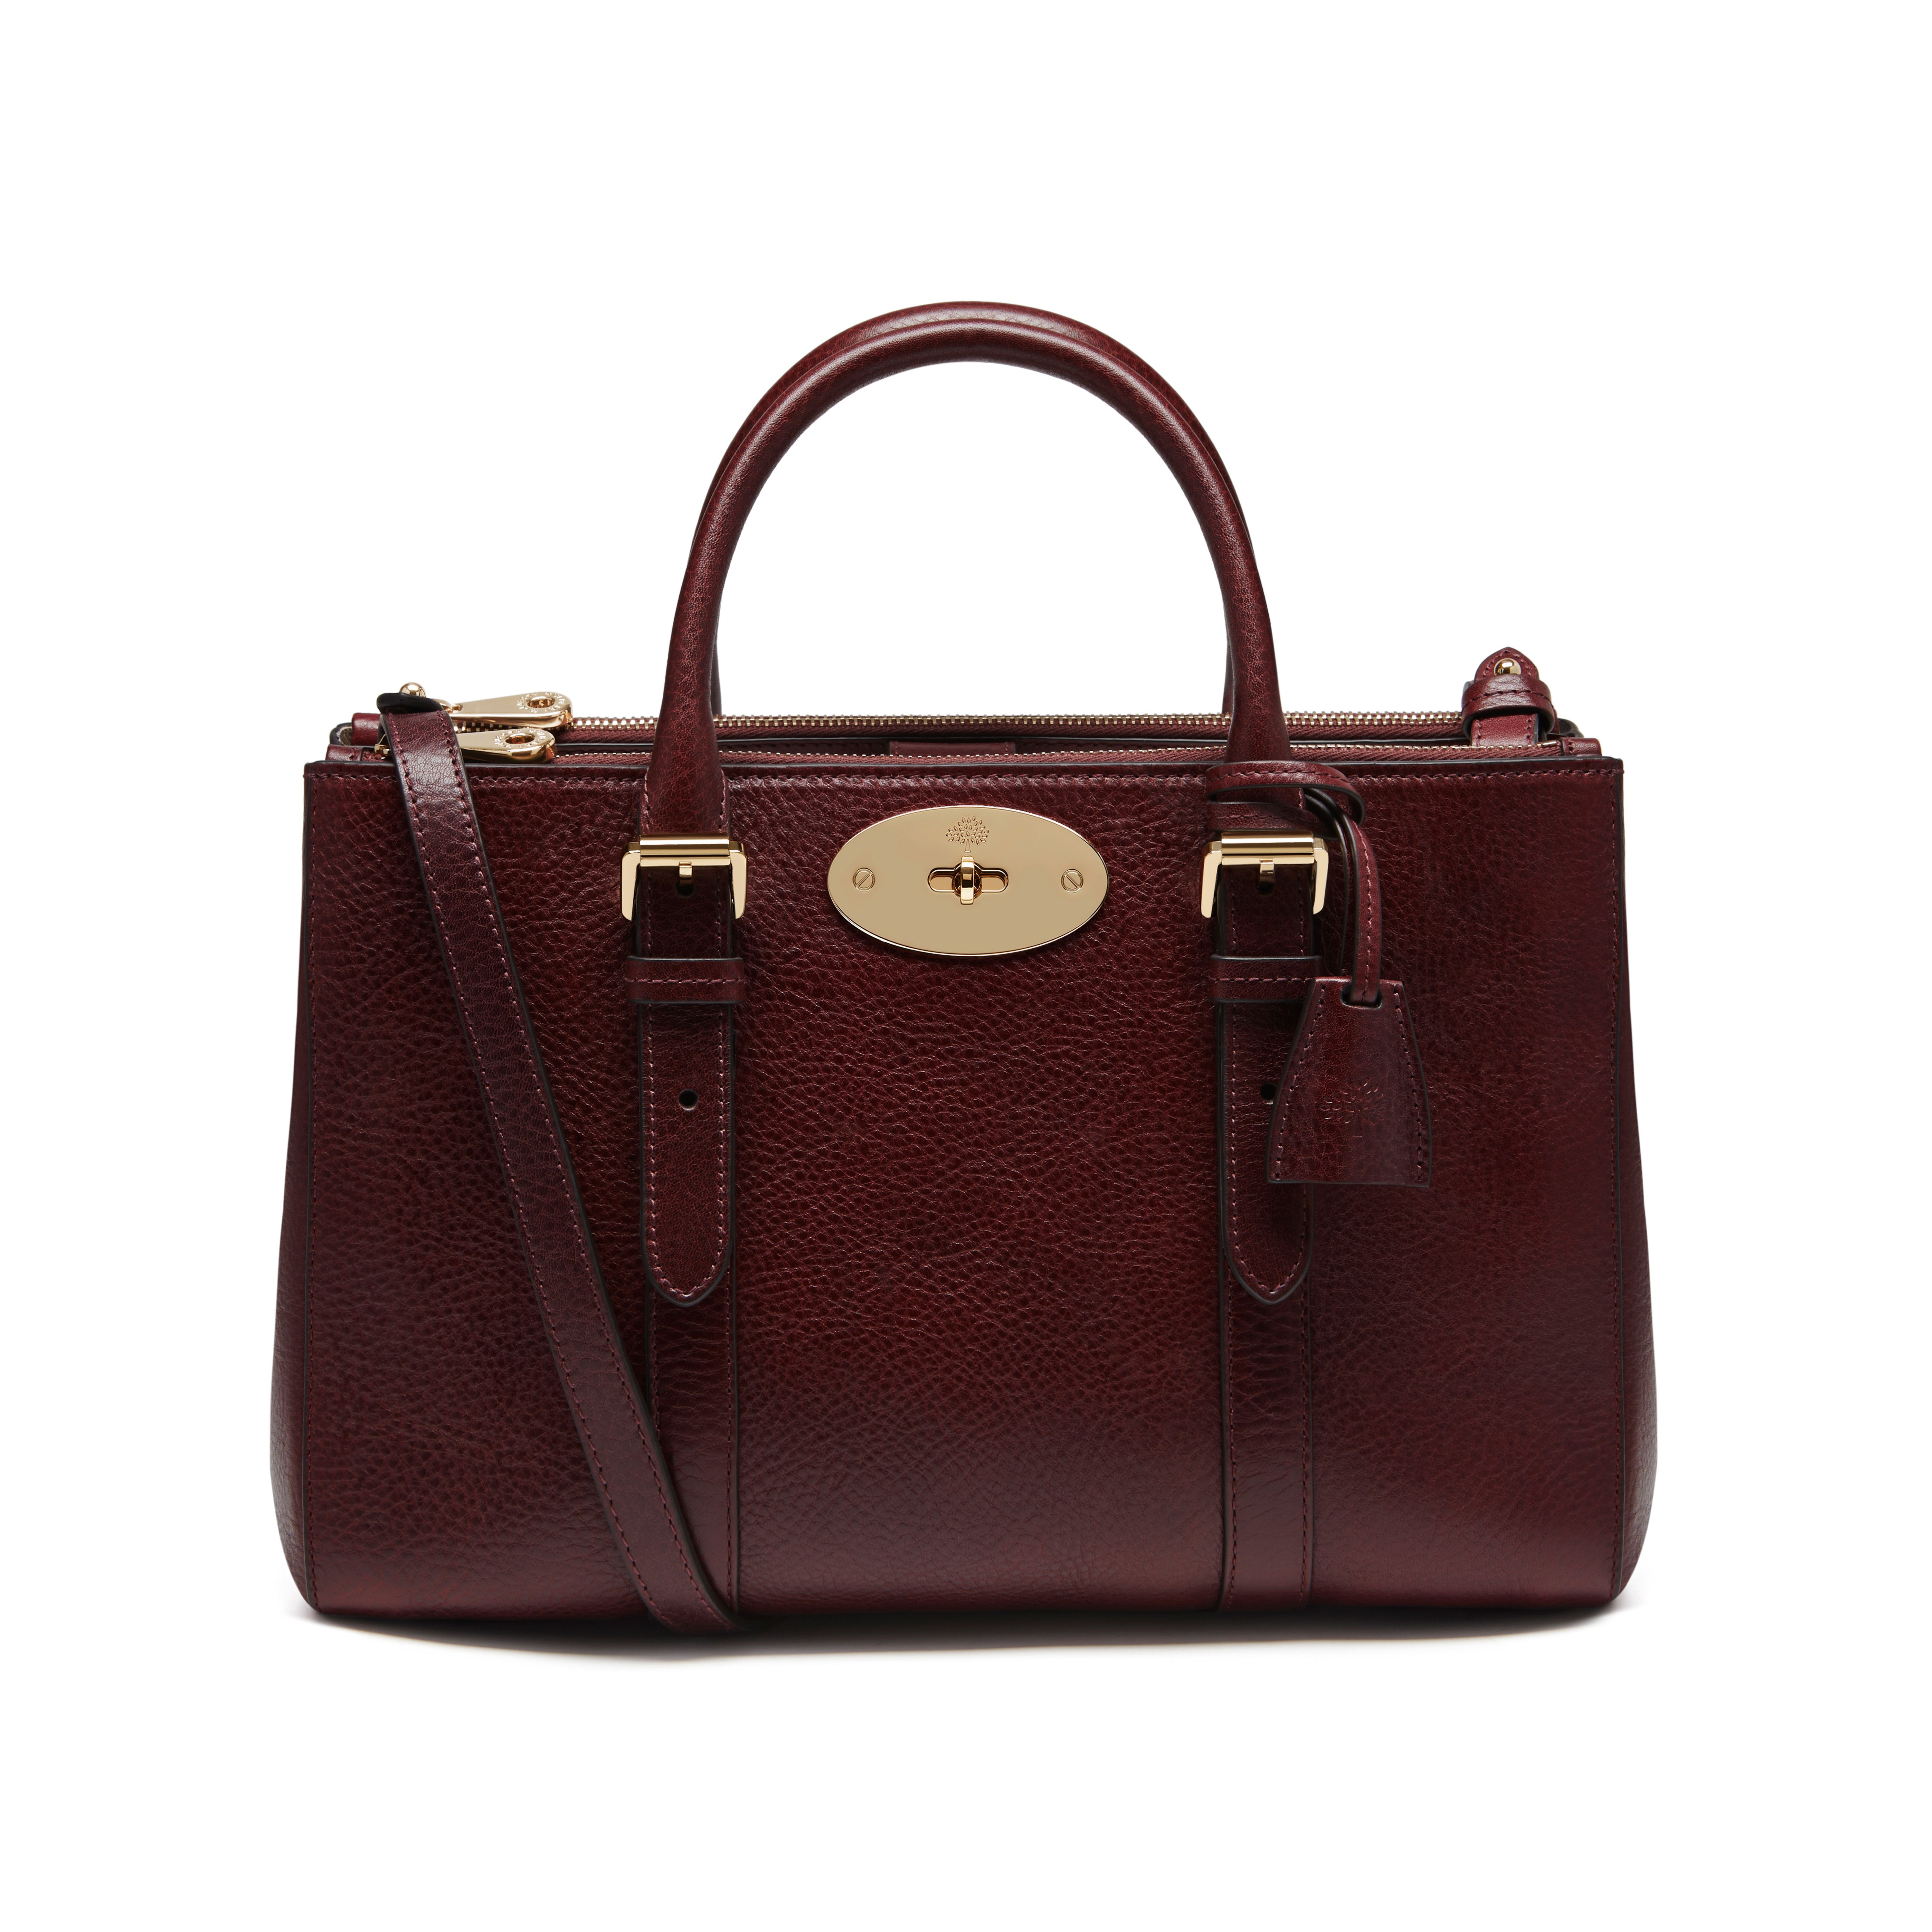 Mulberry Small Bayswater Double Zip Tote In Oxblood Coloured Natural Leather